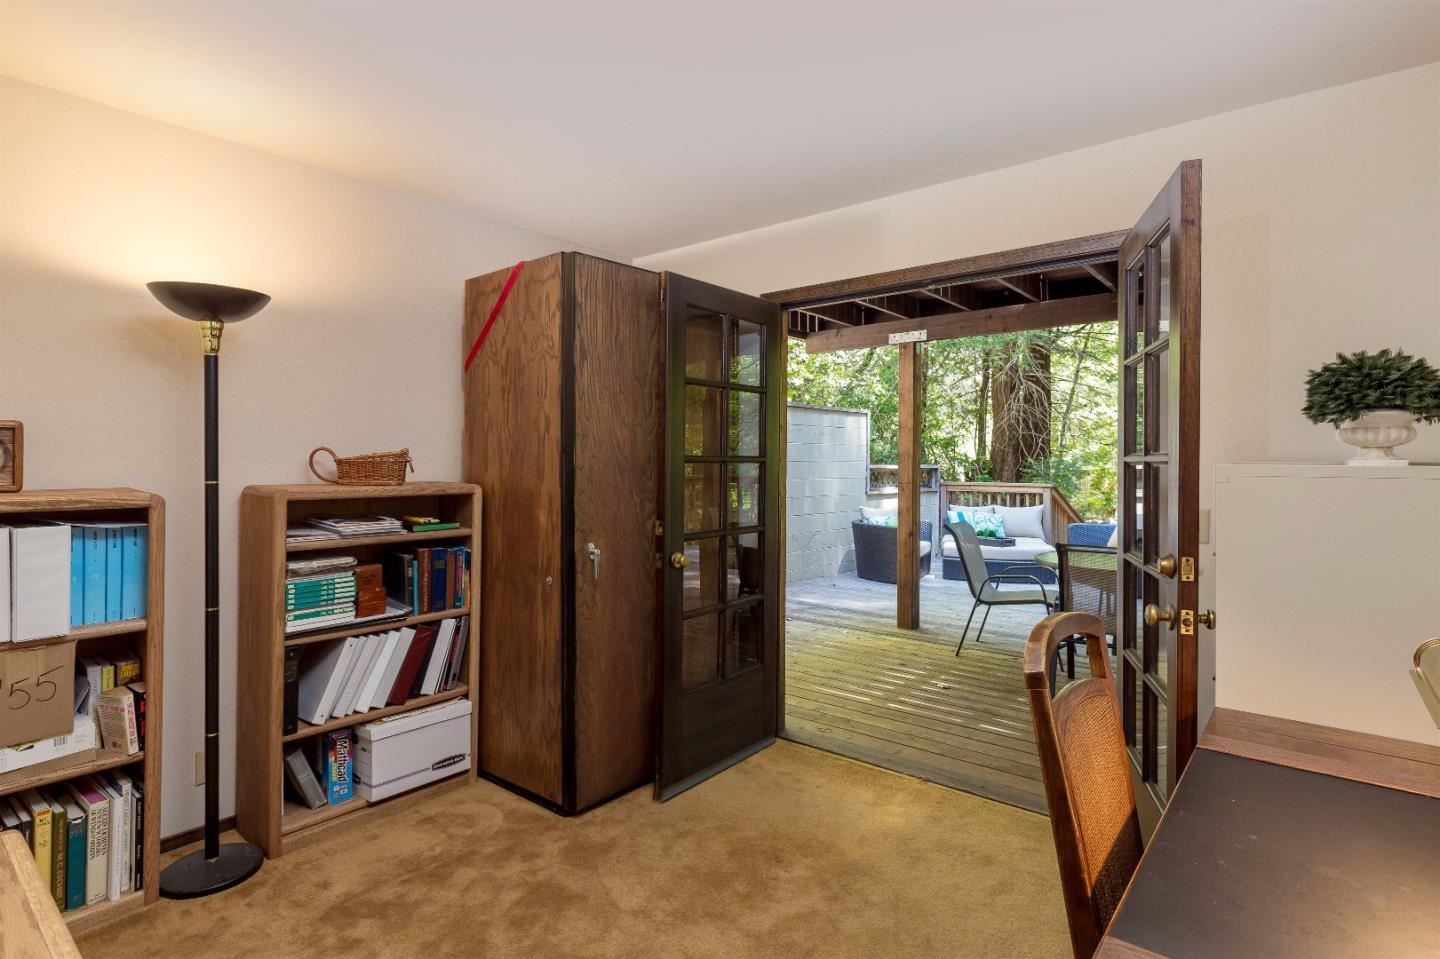 Additional photo for property listing at 15181 Old Japanese Road  Los Gatos, カリフォルニア 95033 アメリカ合衆国